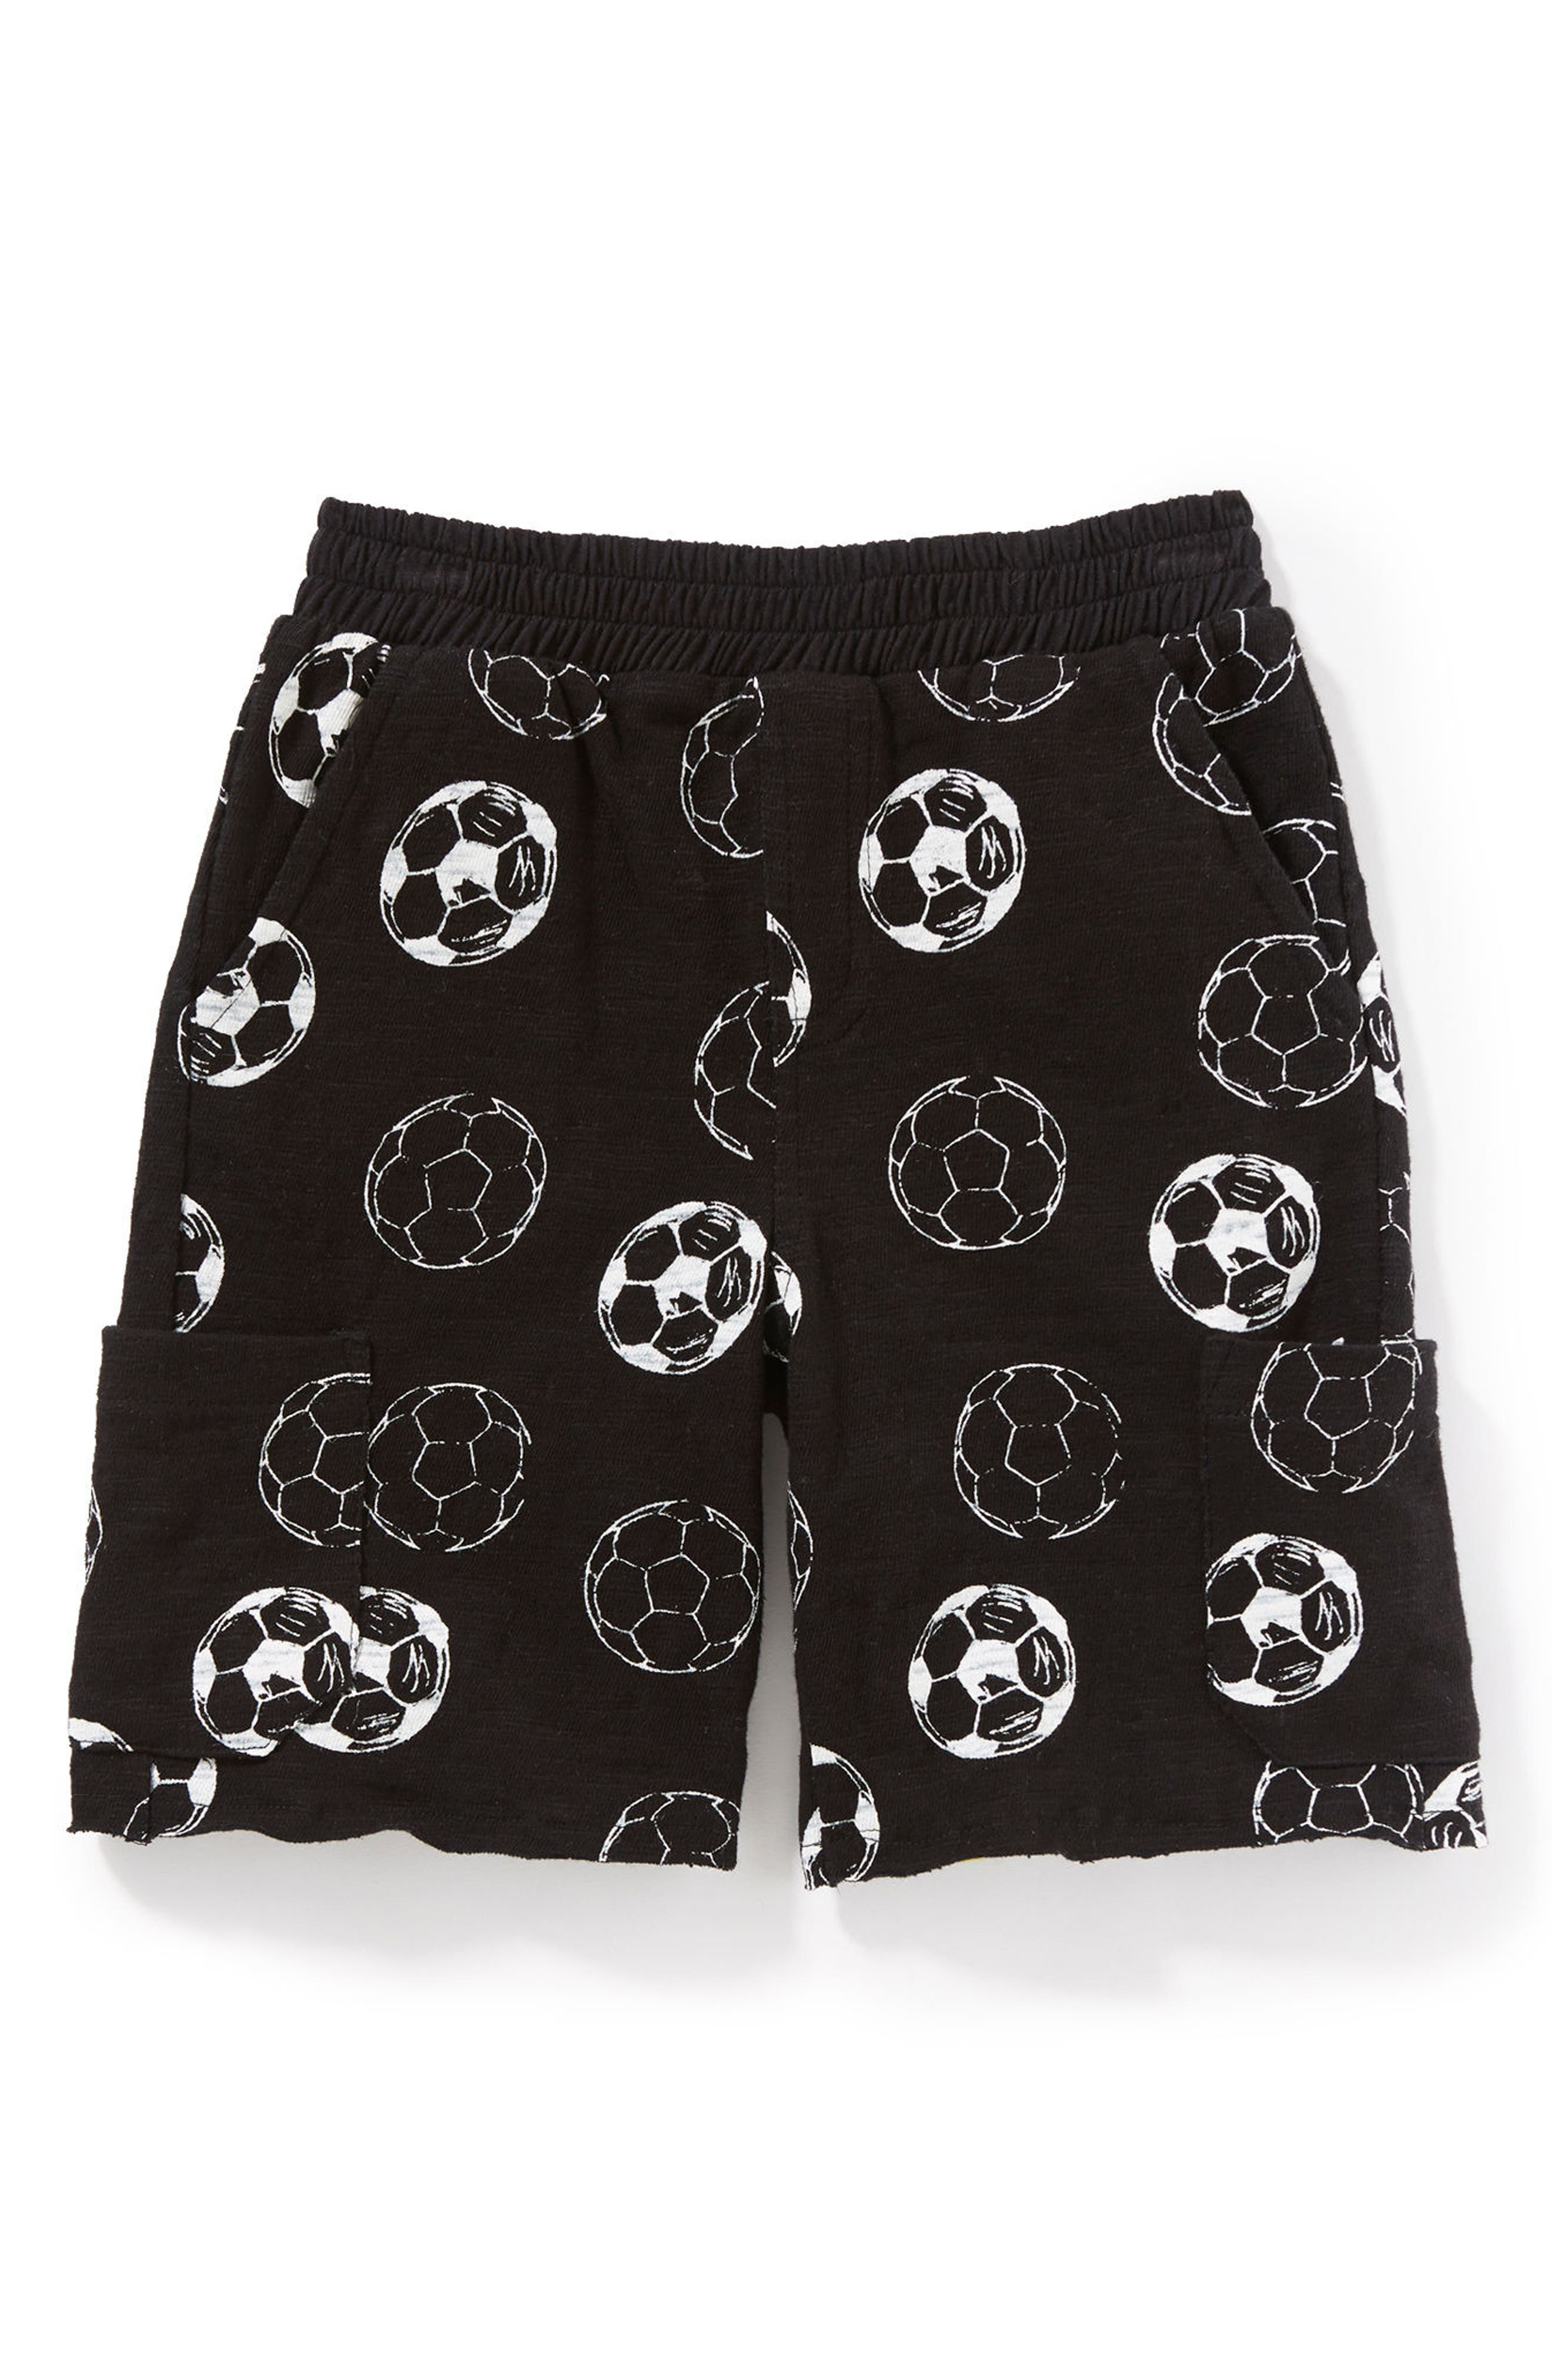 Soccer Ball Shorts,                             Main thumbnail 1, color,                             001